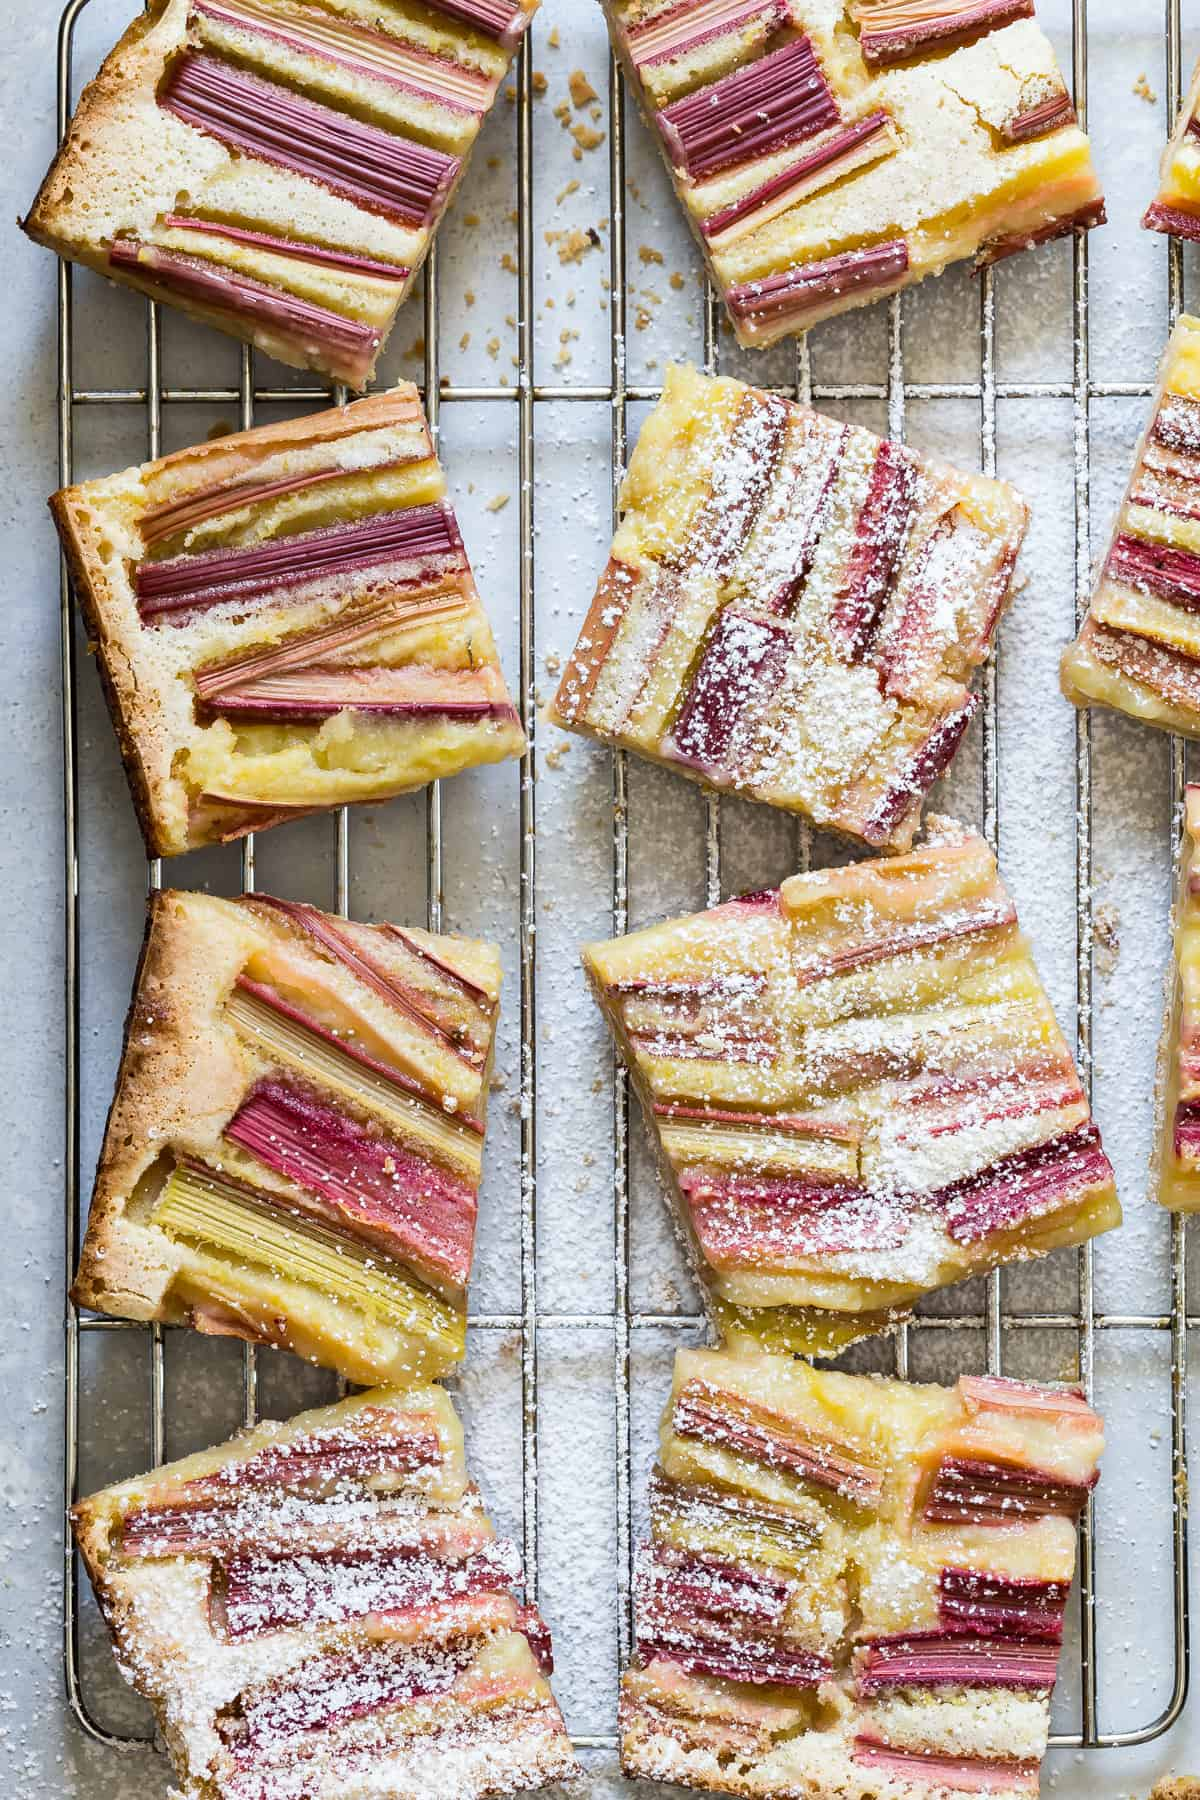 Lemon bars topped with fresh rhubarb and dusted with powdered sugar for an awesome summers dessert!